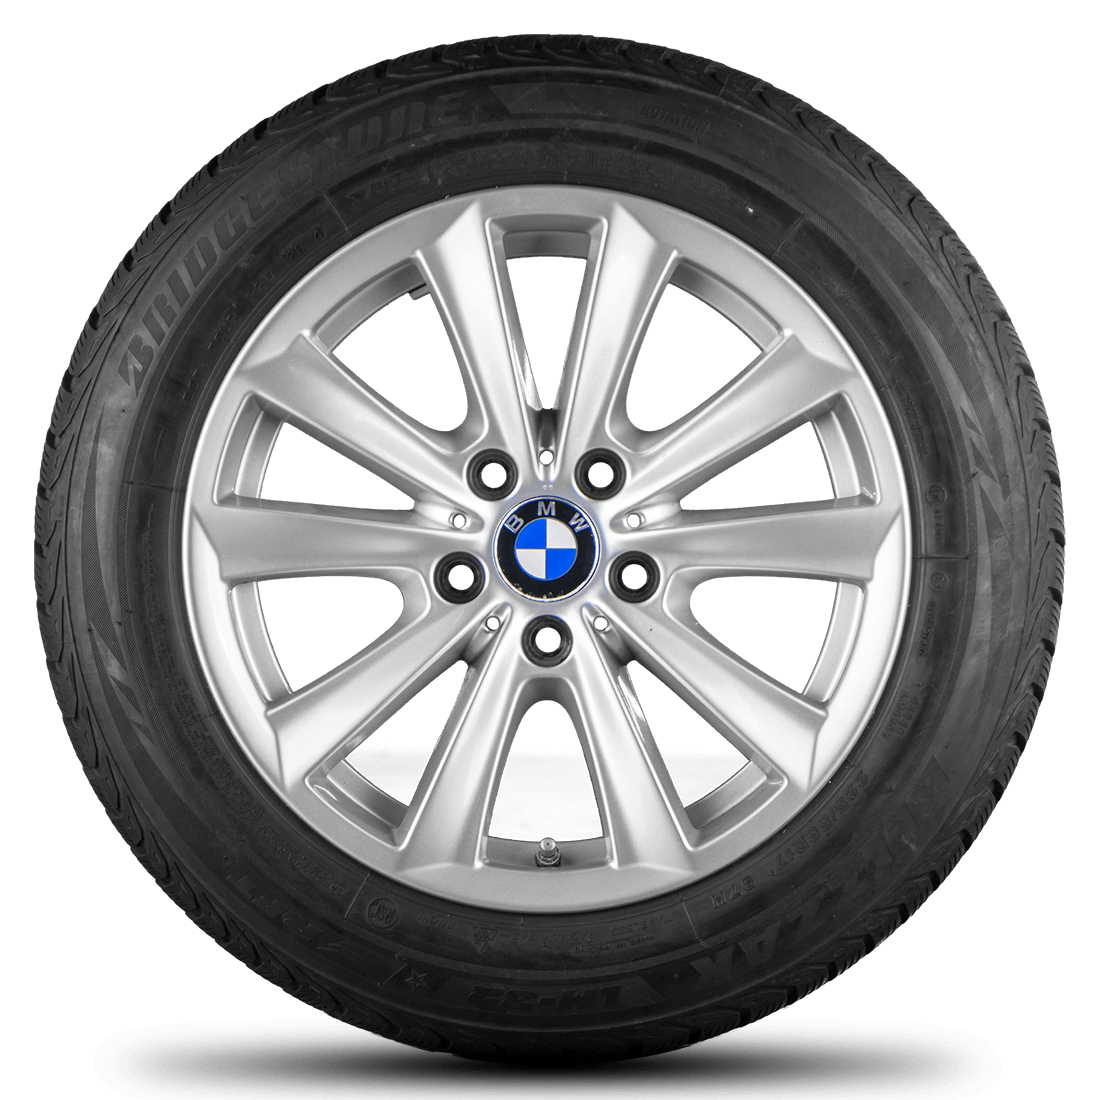 Bmw 5 Series F10 F11 6 Series F12 F13 17 Inch Alloy Wheels